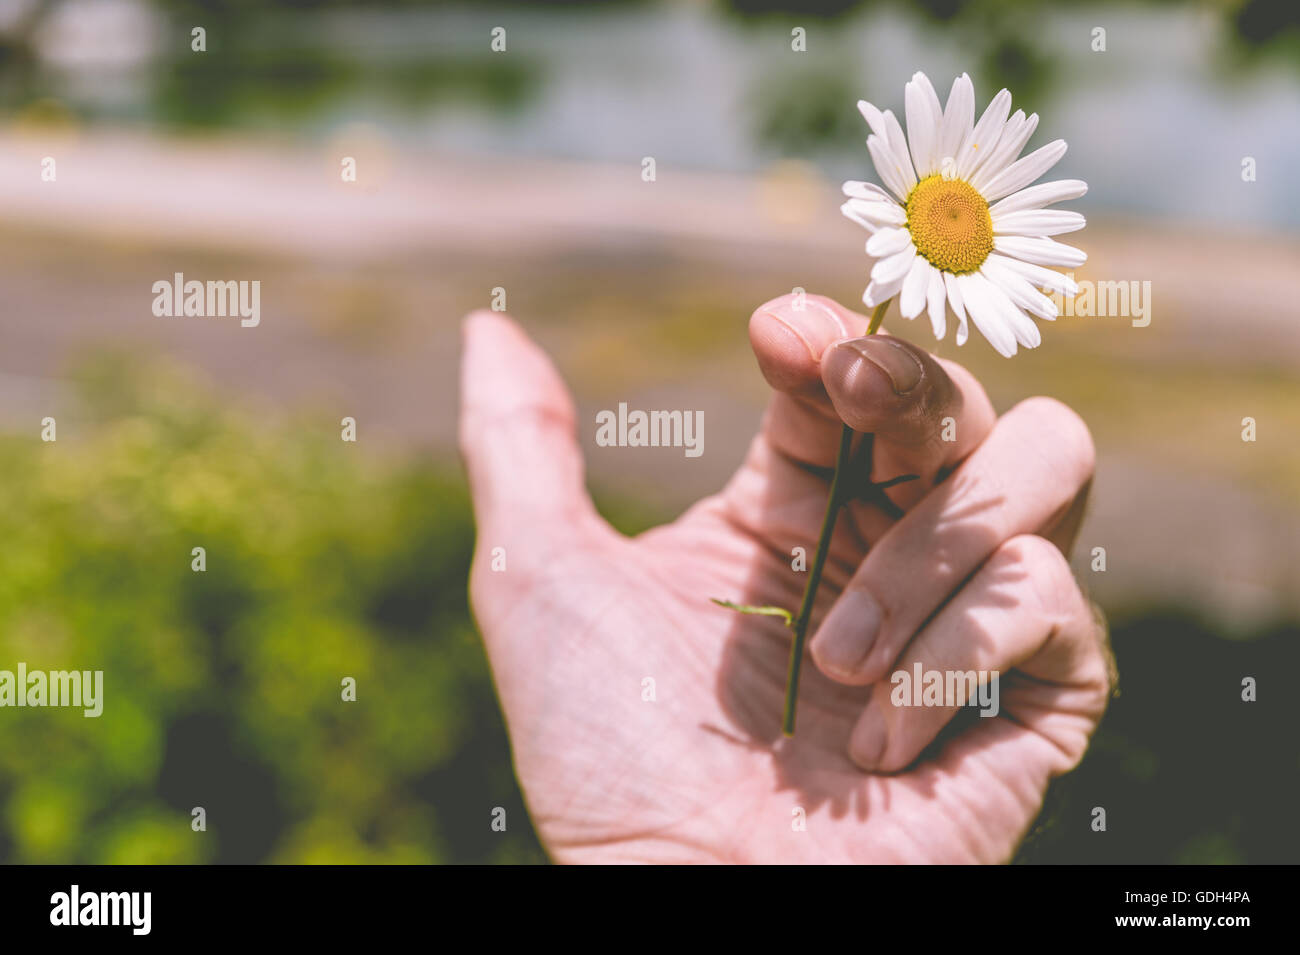 Quit Smoking - Hand holding a flower instead of a cigarette (toned effect) - Stock Image